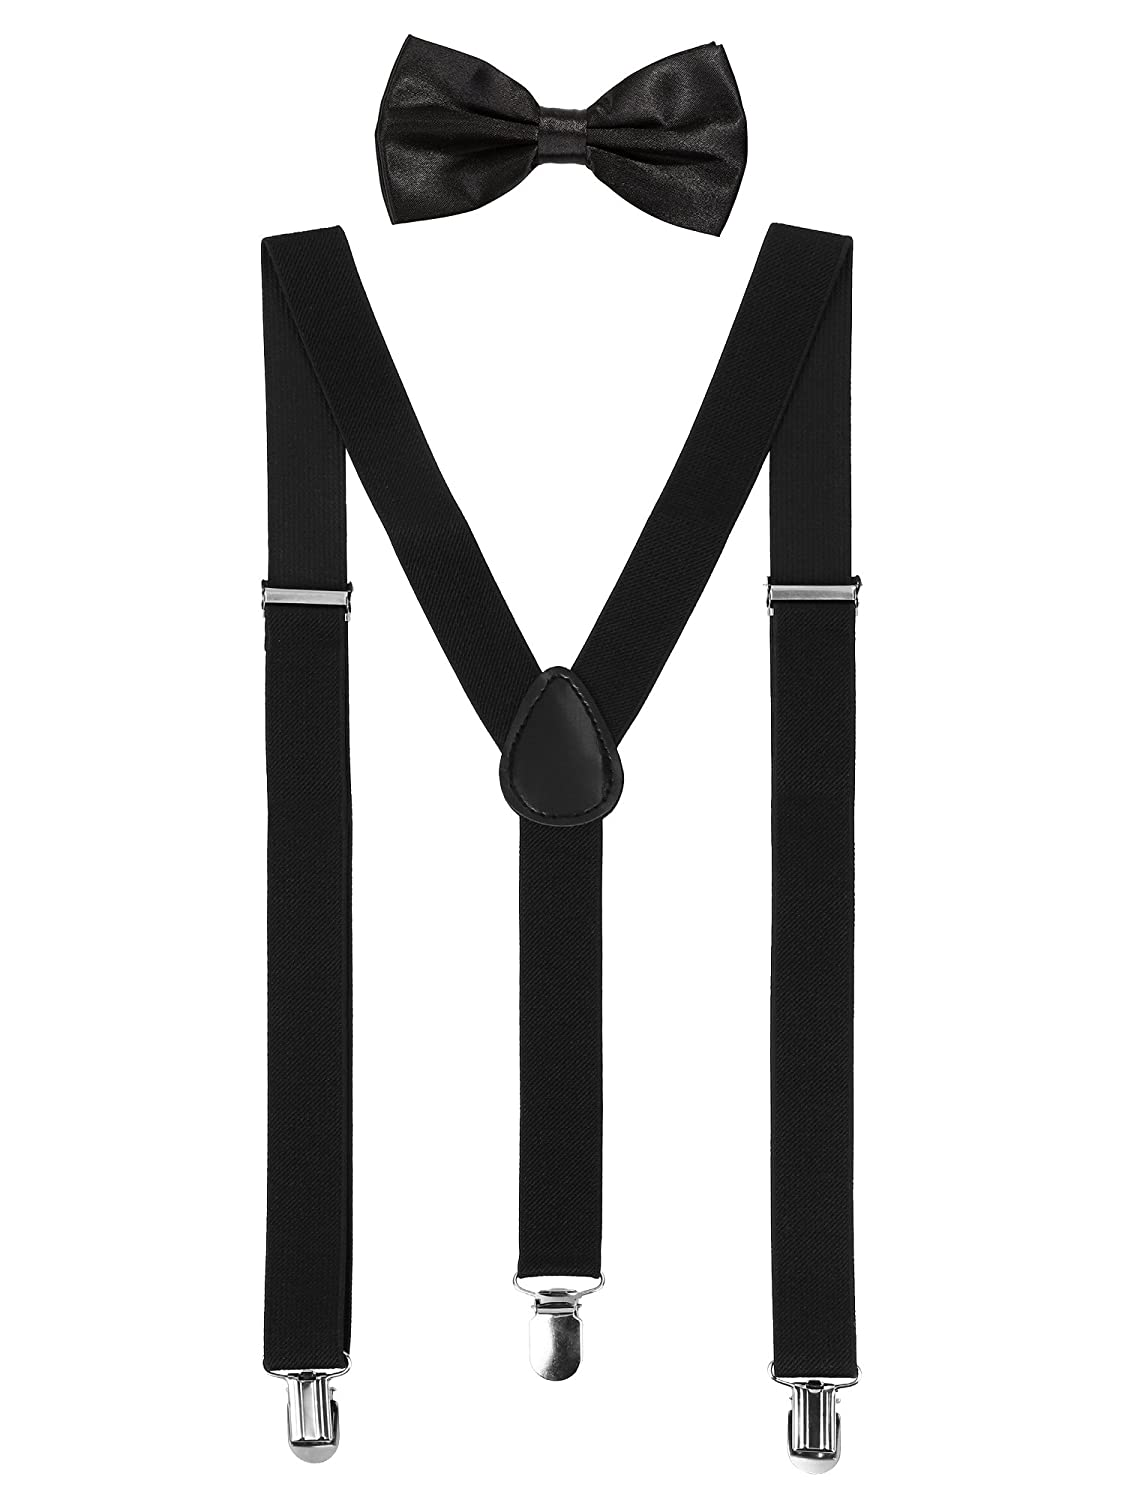 Pant Suspenders Shoulder Straps for Cosplay Party Pant Suspenders Shoulder Straps for Cosplay Party Red with White Dots Suspender Bow Tie Set Clip On Y Shape Adjustable Braces